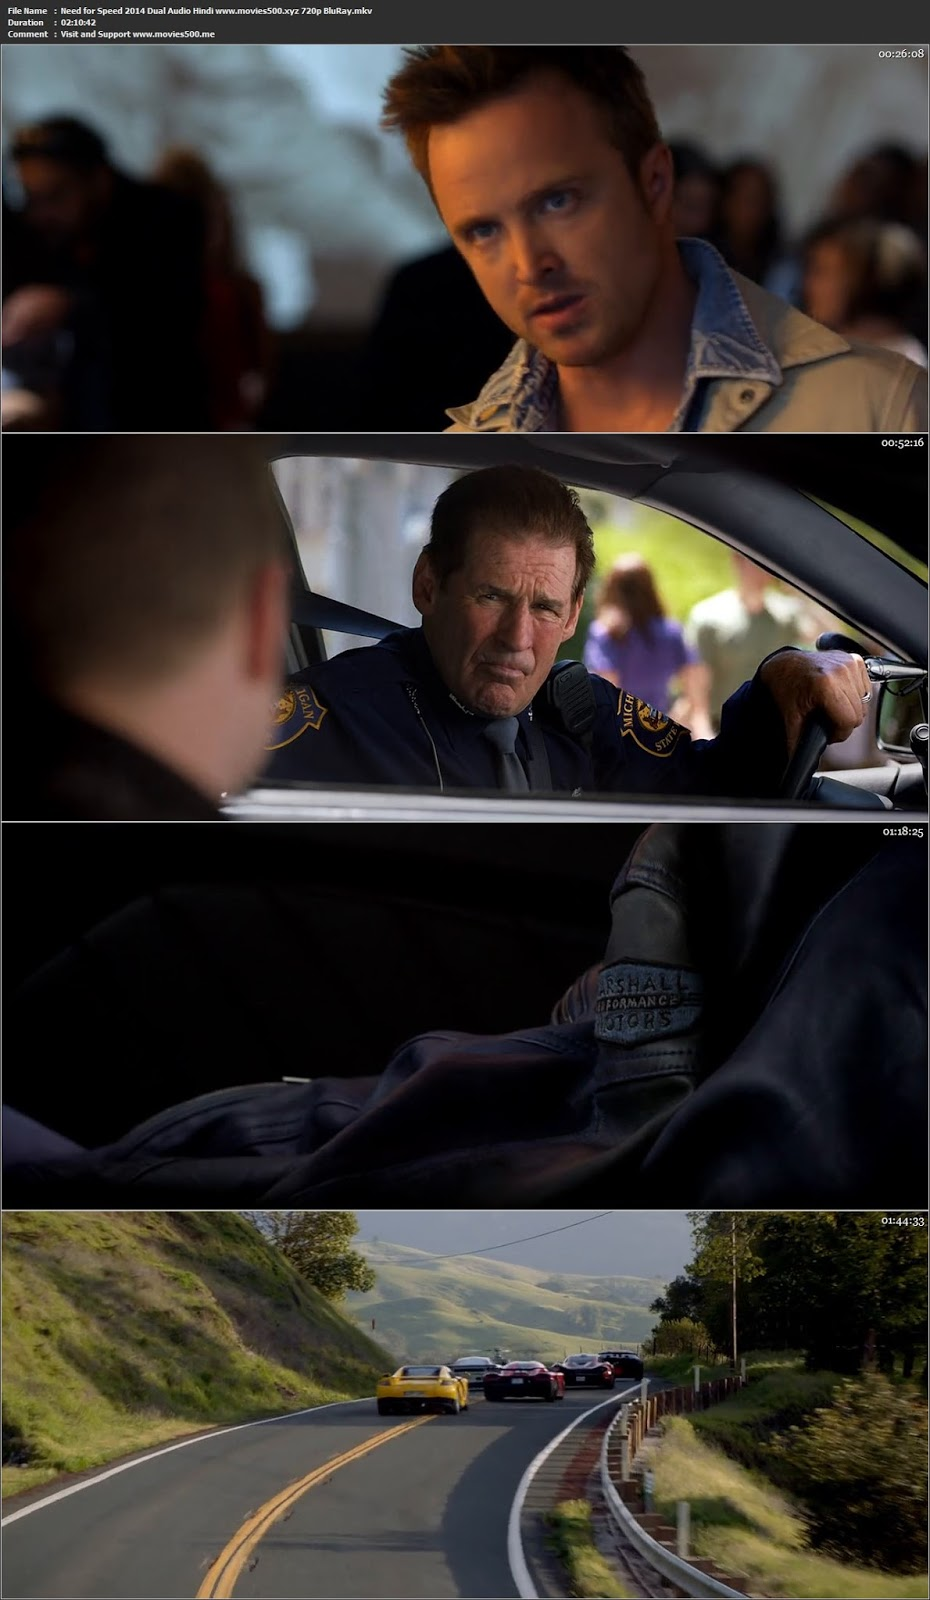 Need for Speed 2014 Dual Audio Hindi Full Movie BluRay 720p ESUbs at movies500.info